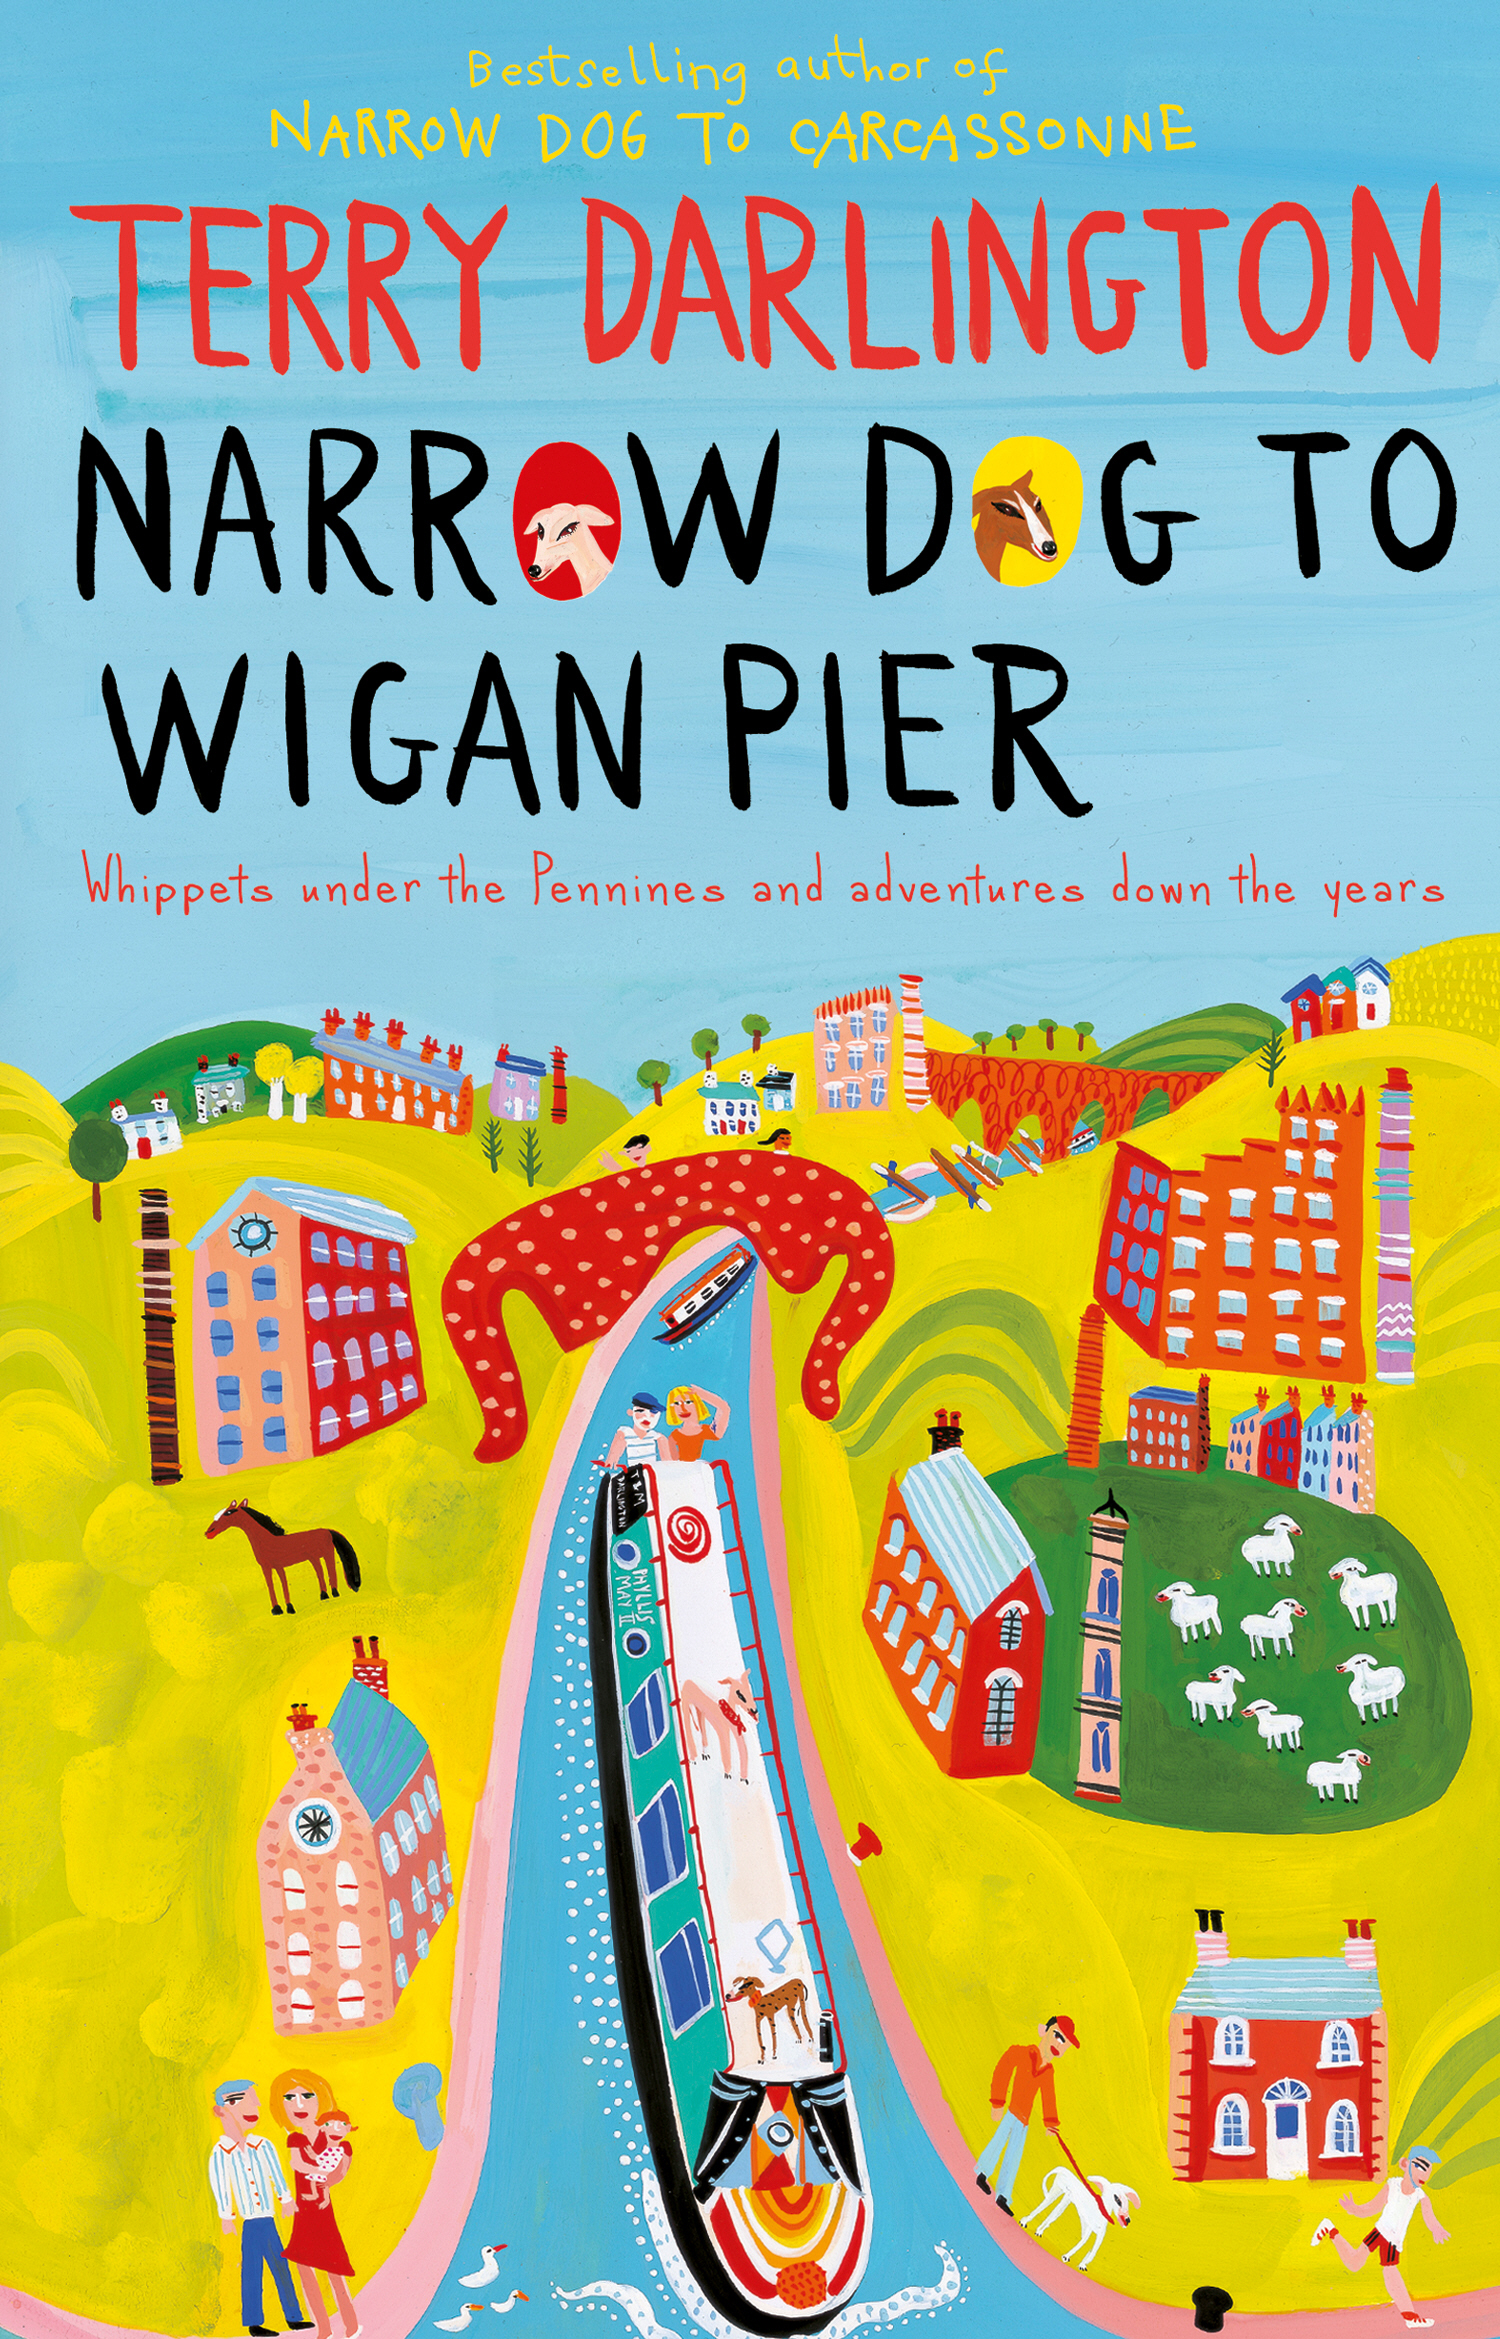 Narrow Dog to Wigan Pier